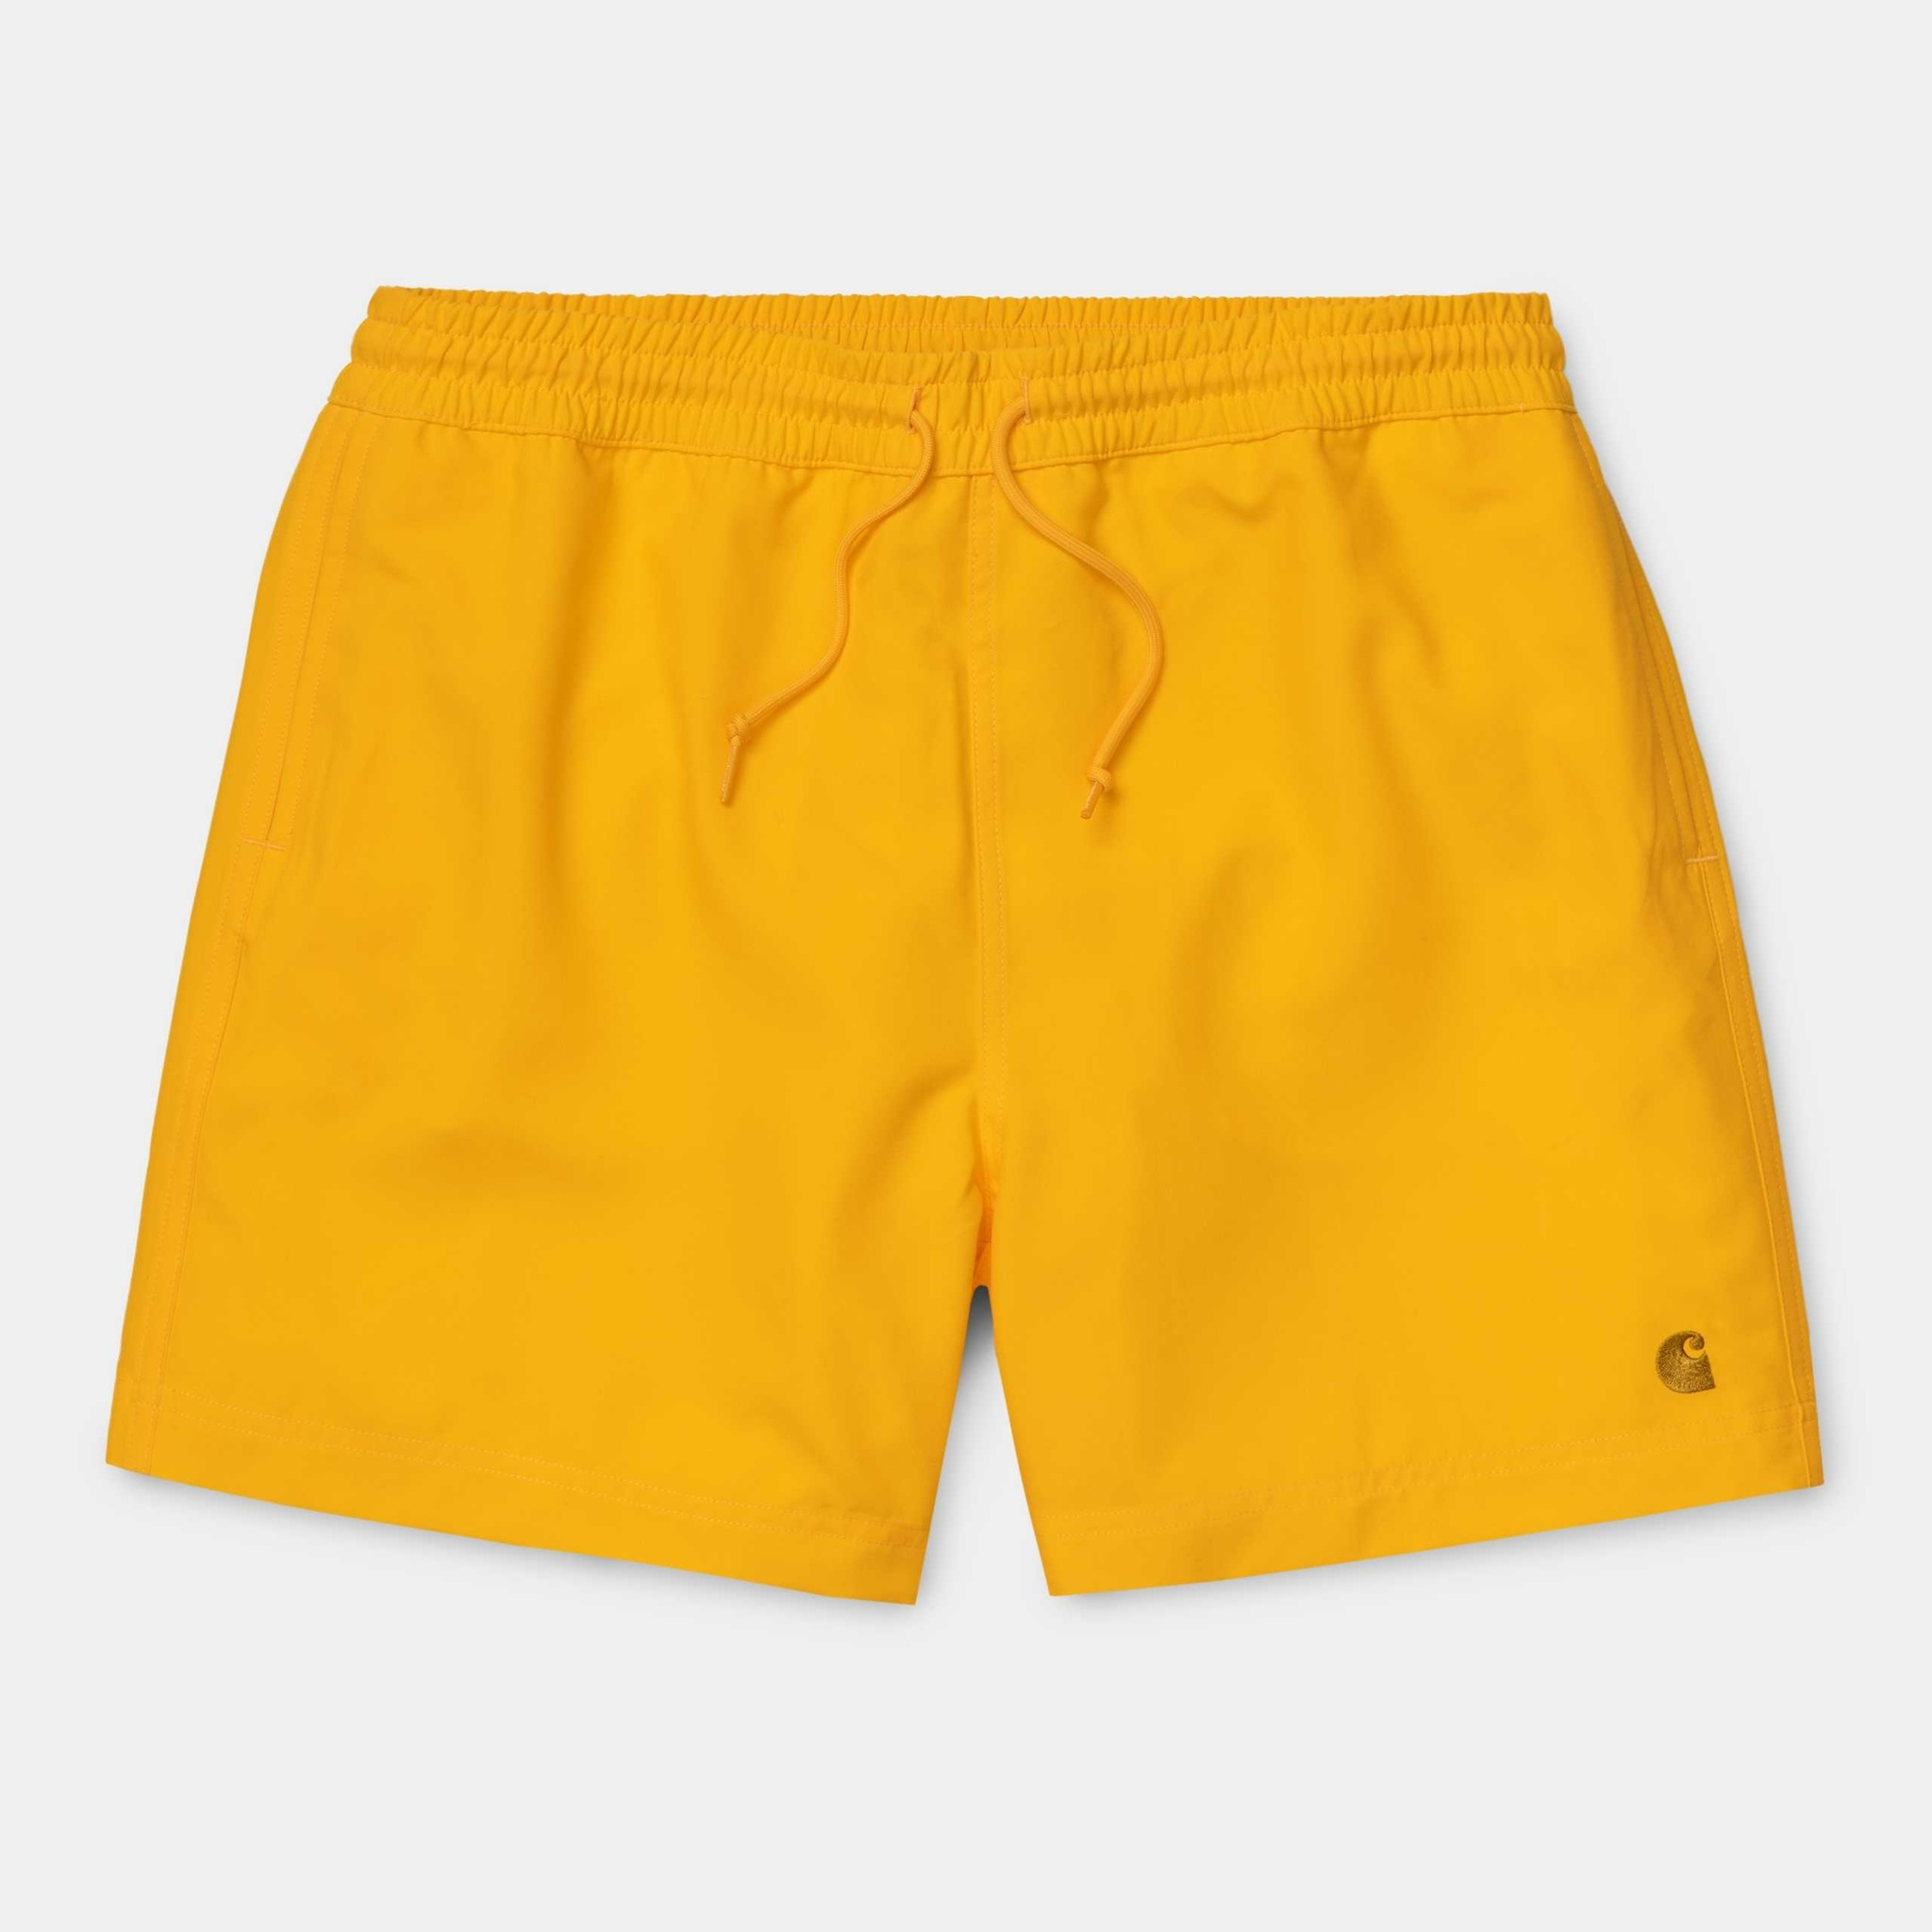 Carhartt Carhartt Chase Swim Trunks